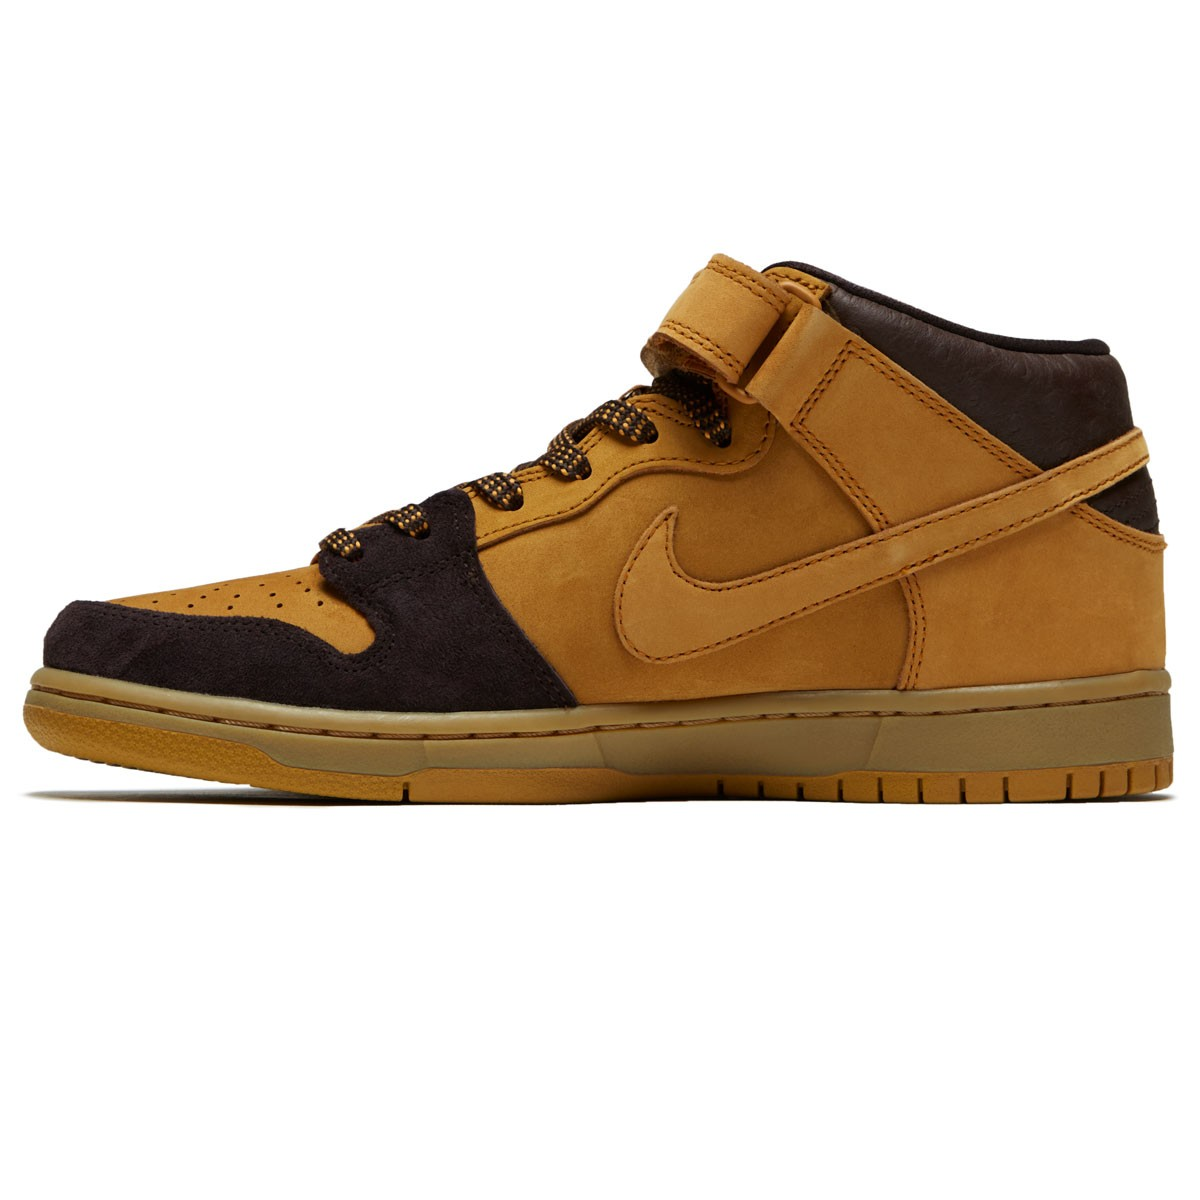 sports shoes ce2ea 20564 Nike SB Lewis Marnell Dunk Mid Pro Shoes